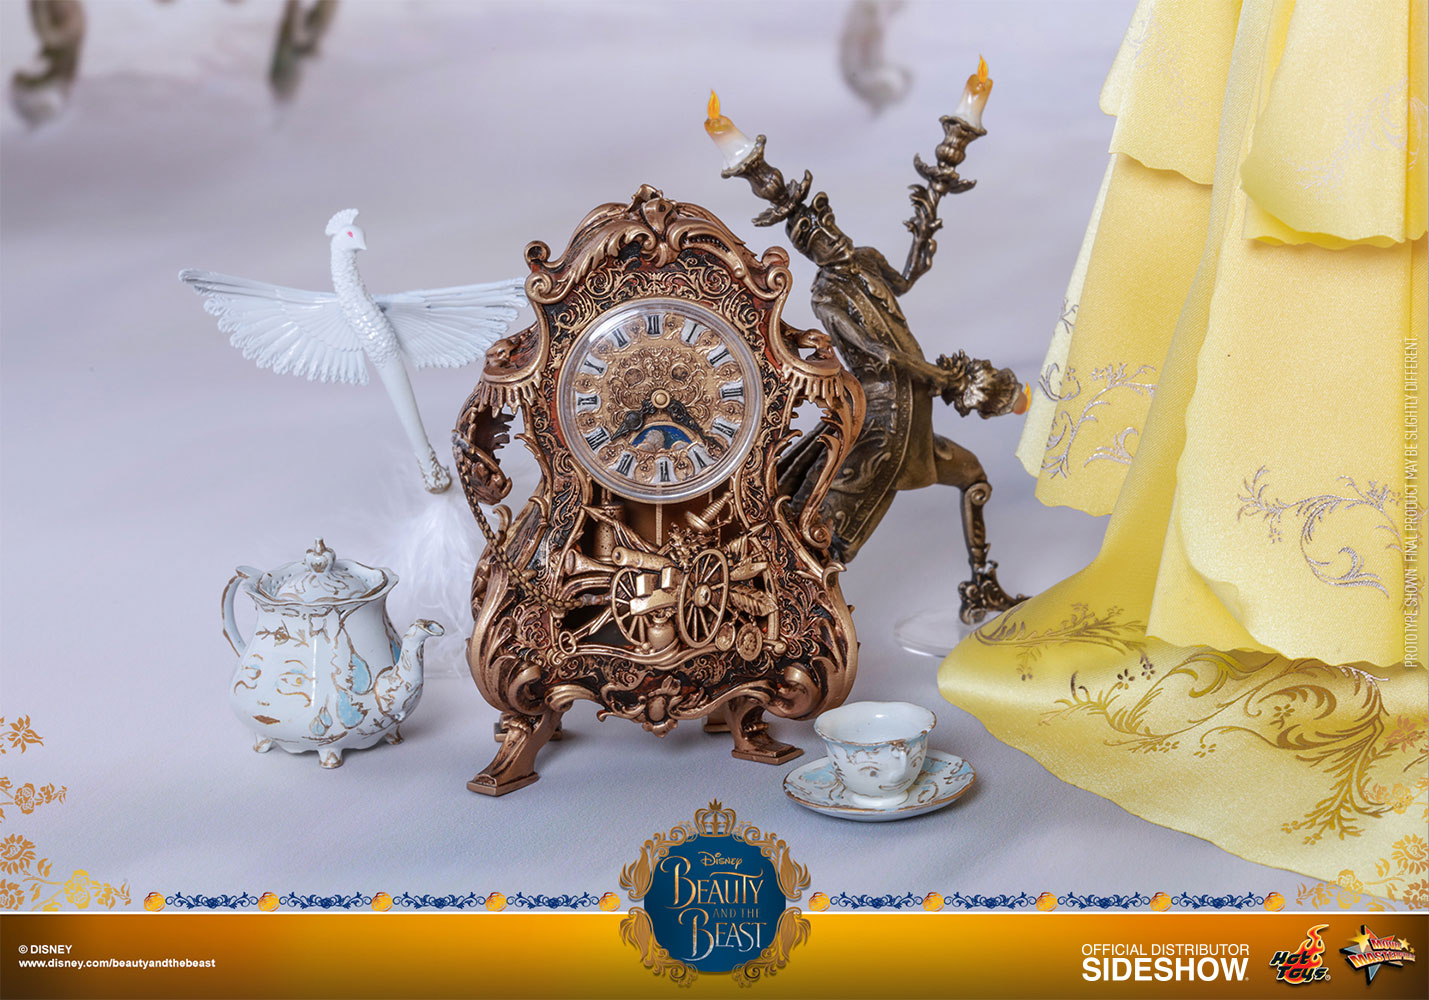 Beauty And The Beast Collectibles >> Disney Belle Sixth Scale Collectible Figure By Hot Toys Beauty And